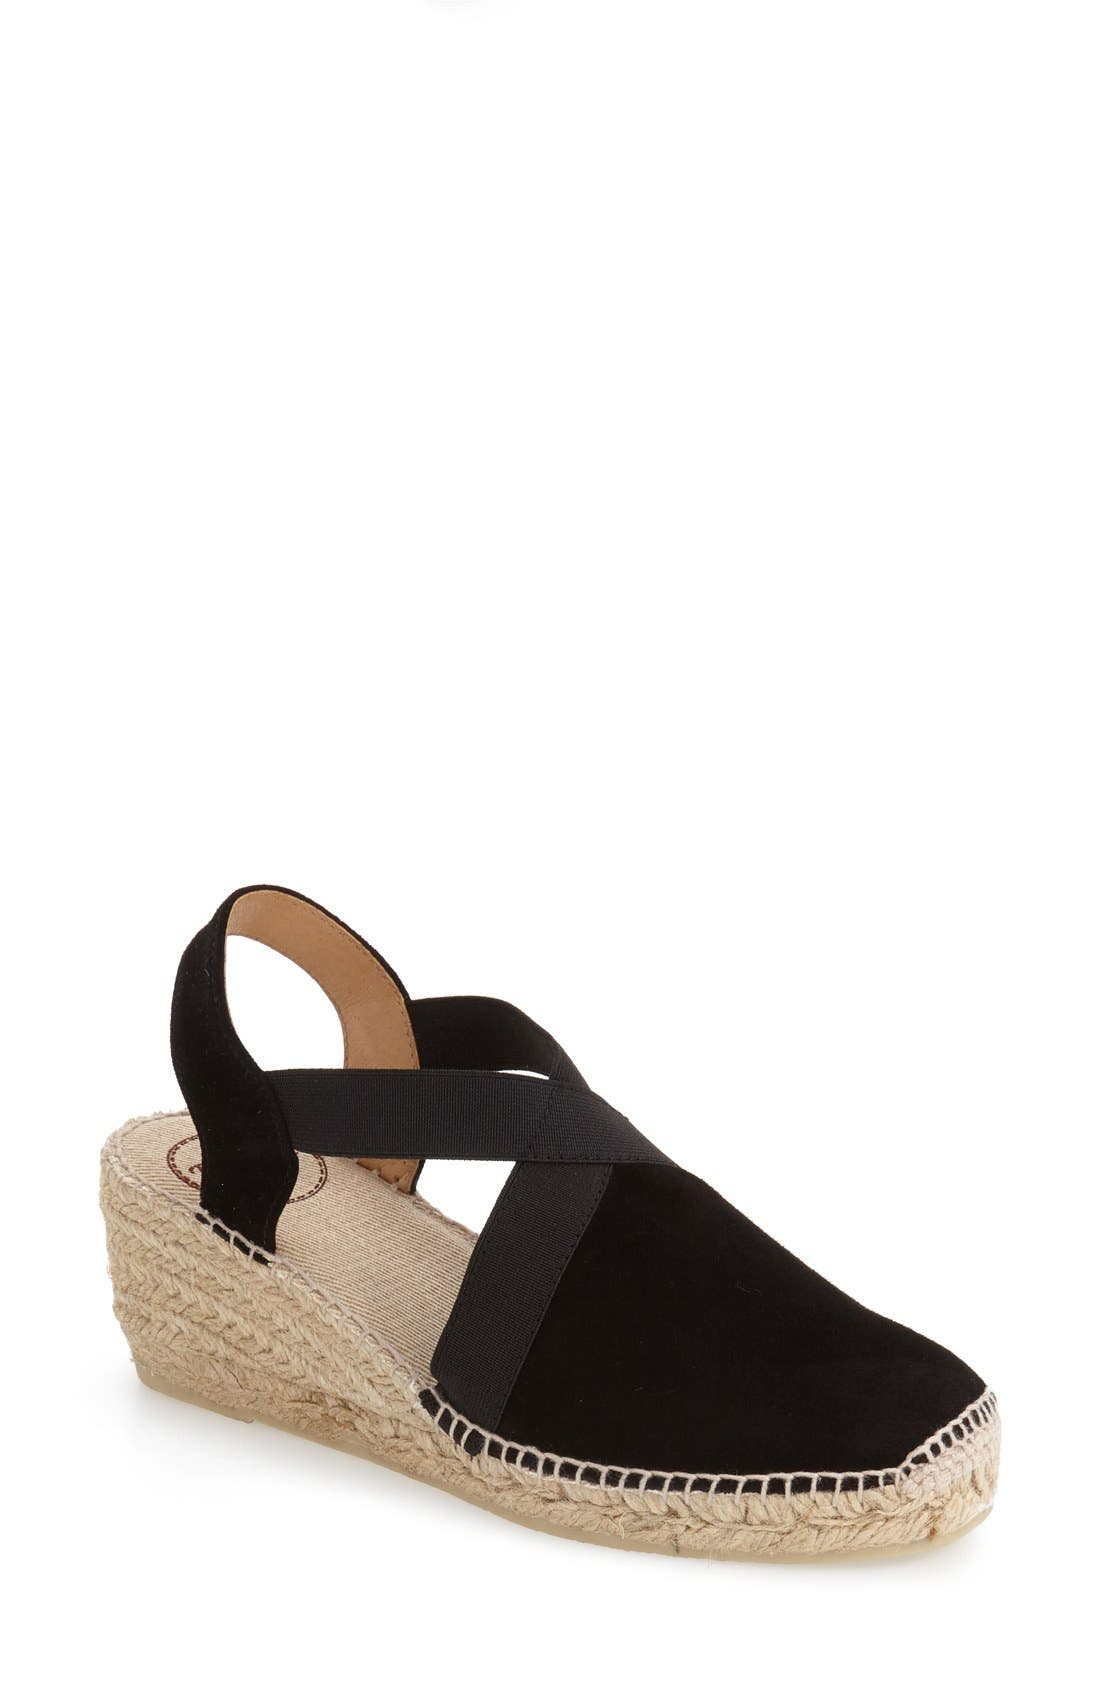 TONI PONS Tona Espadrille Wedge, Main, color, BLACK SUEDE